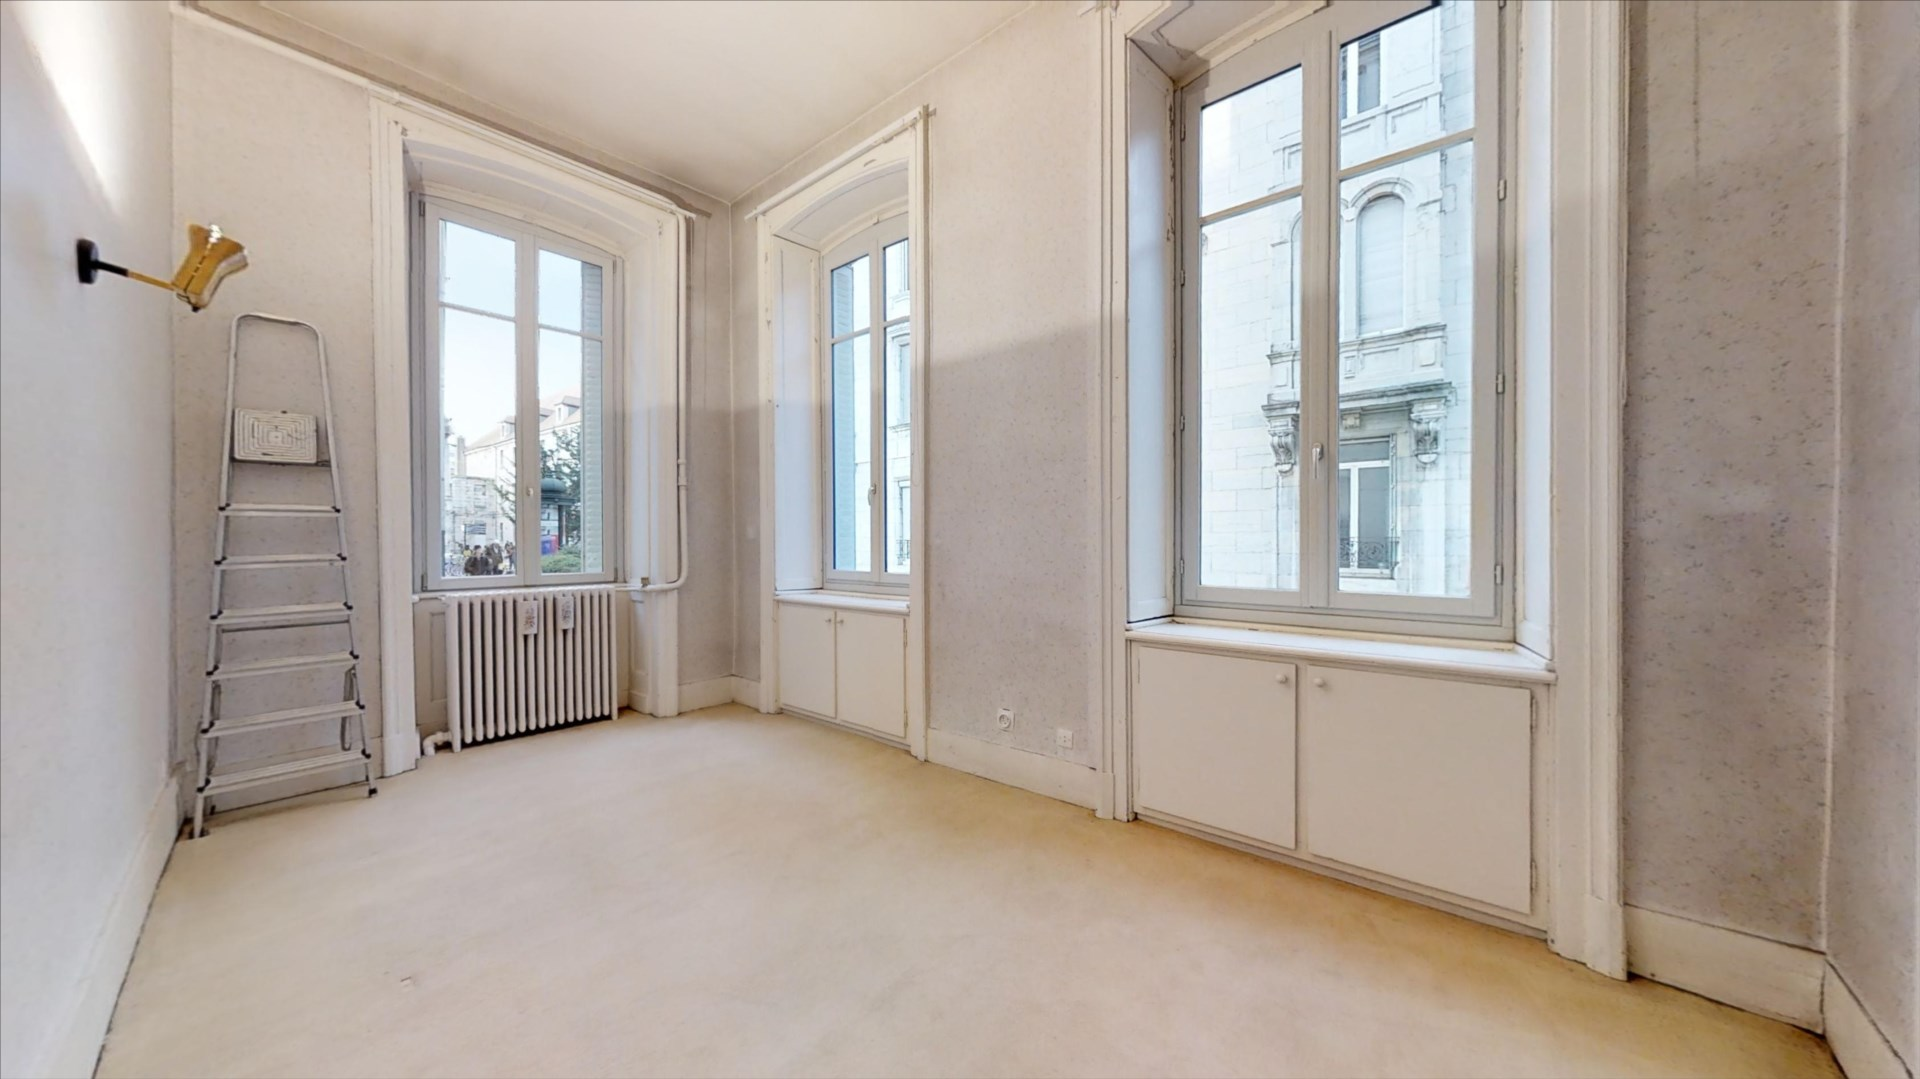 local_professionnel 142.23m² BESANCON - photo 12